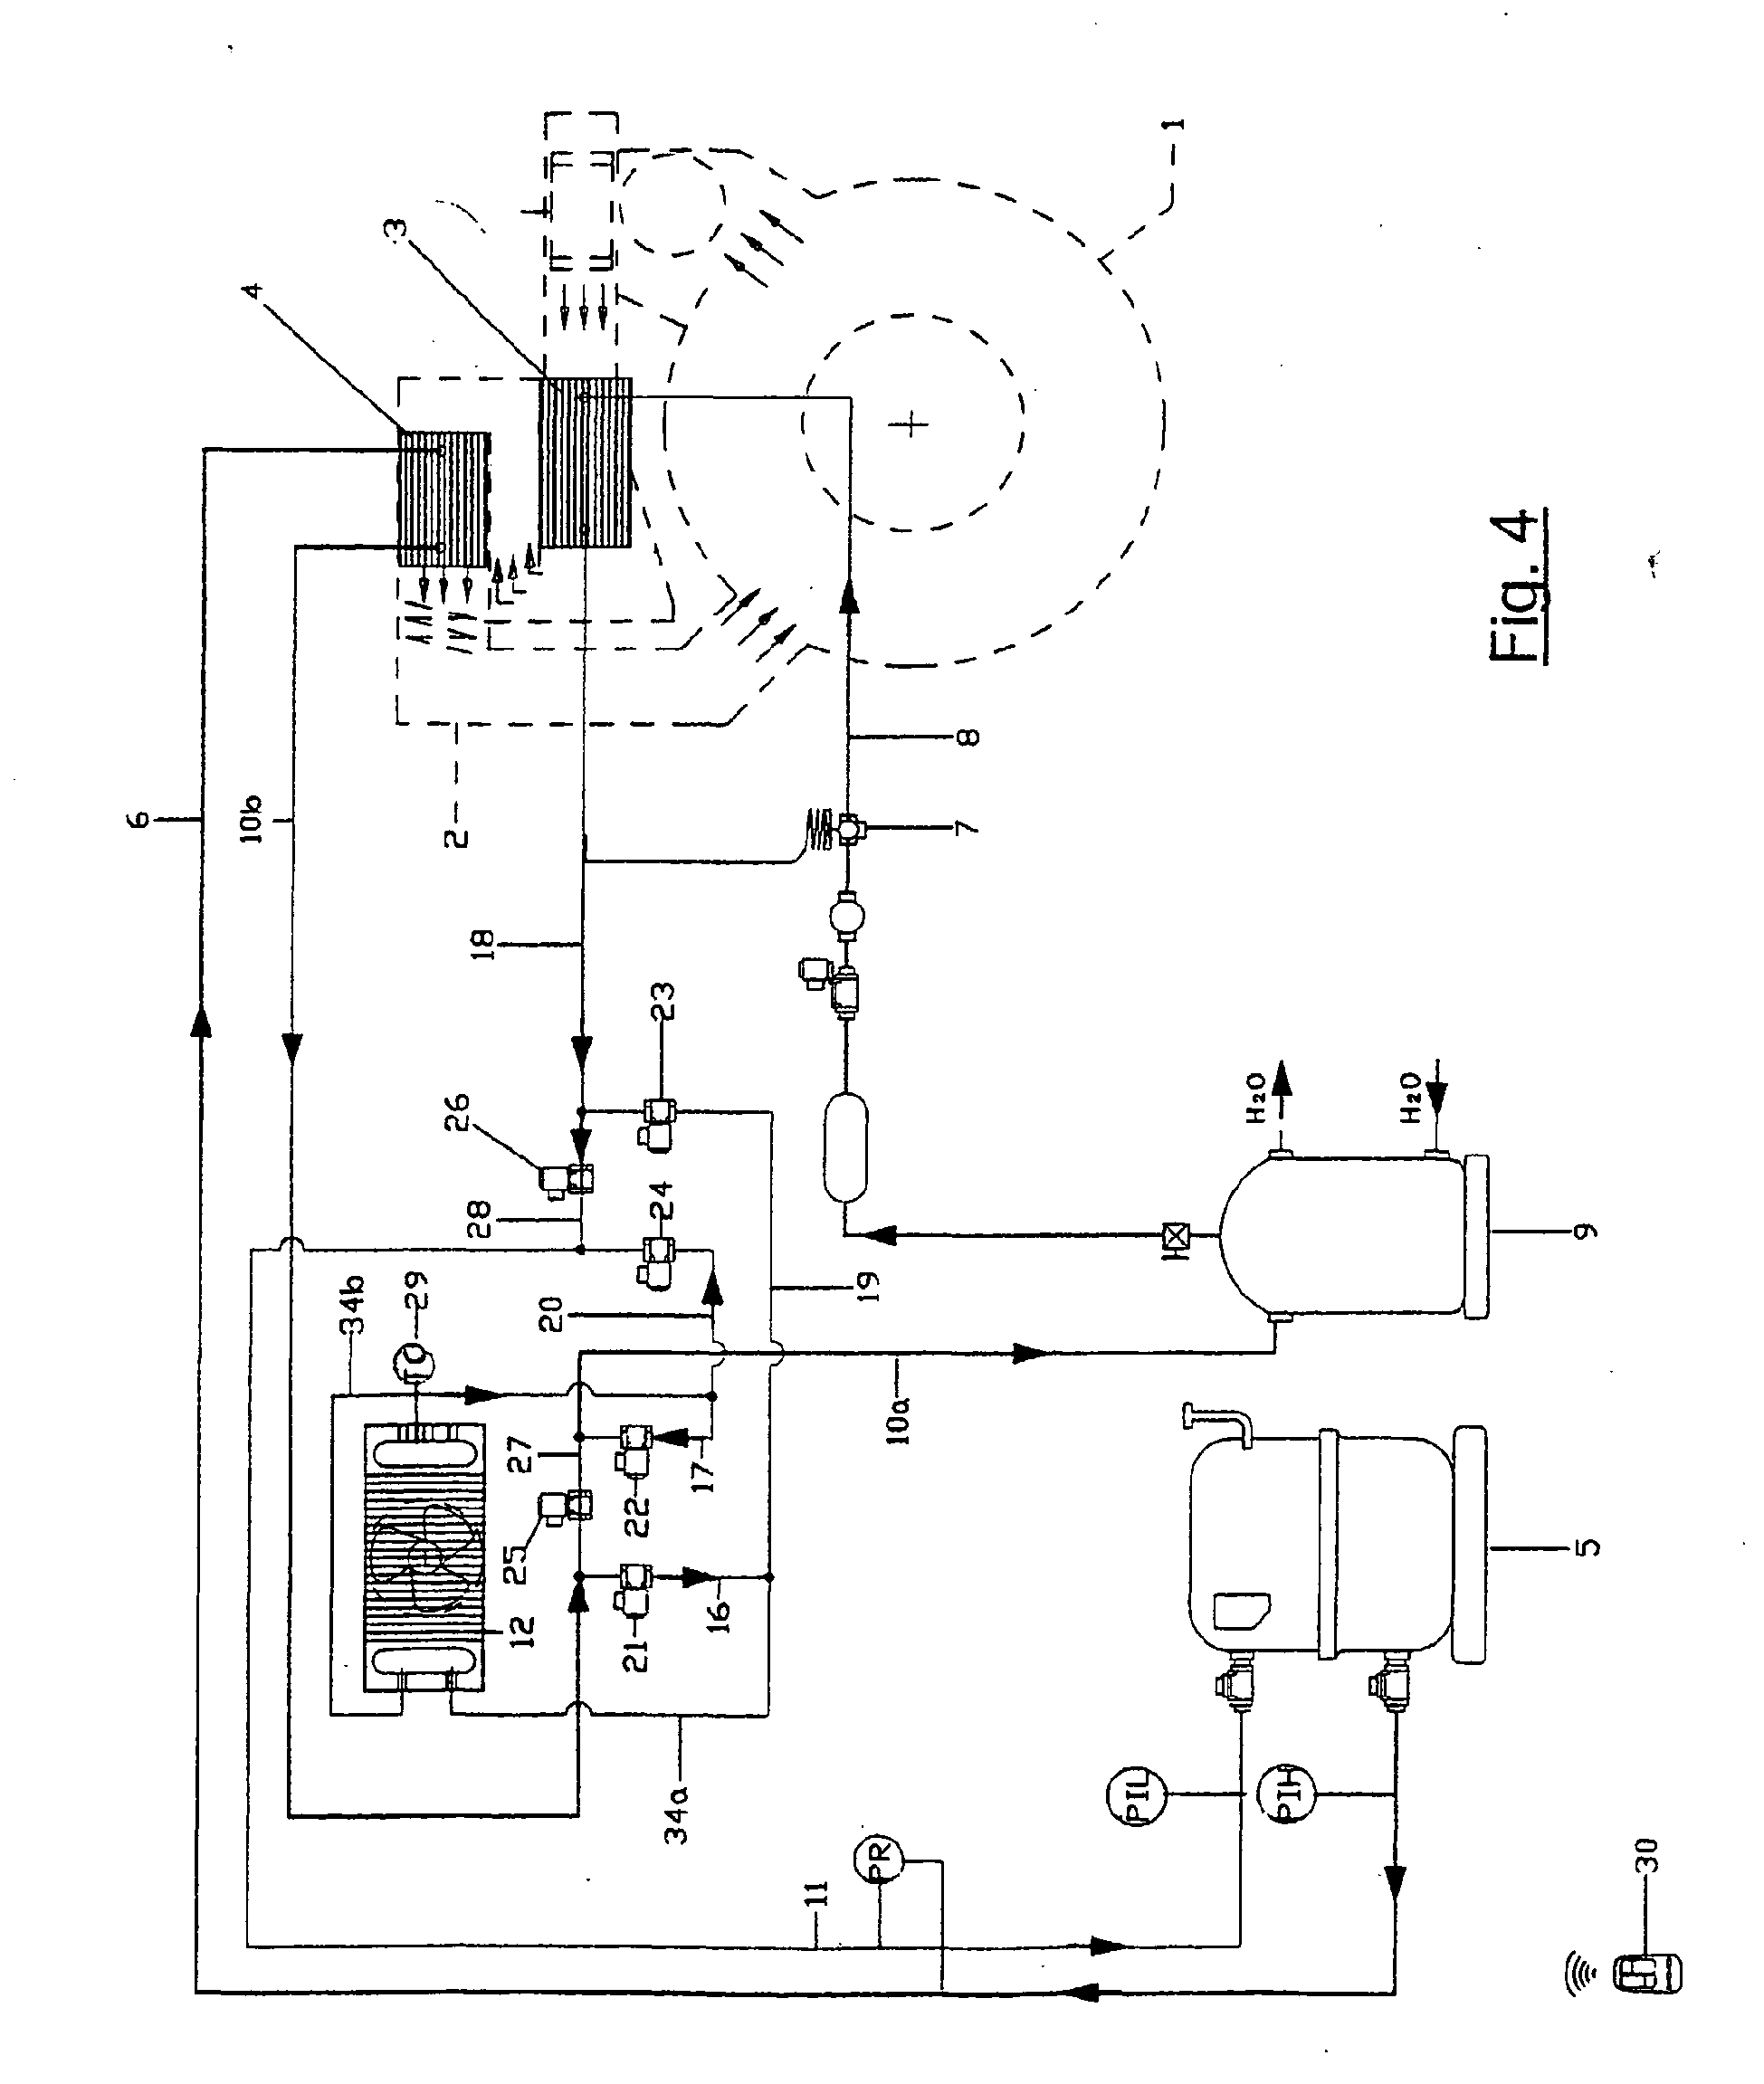 fits into a refrigeration or air conditioning electrical circuit